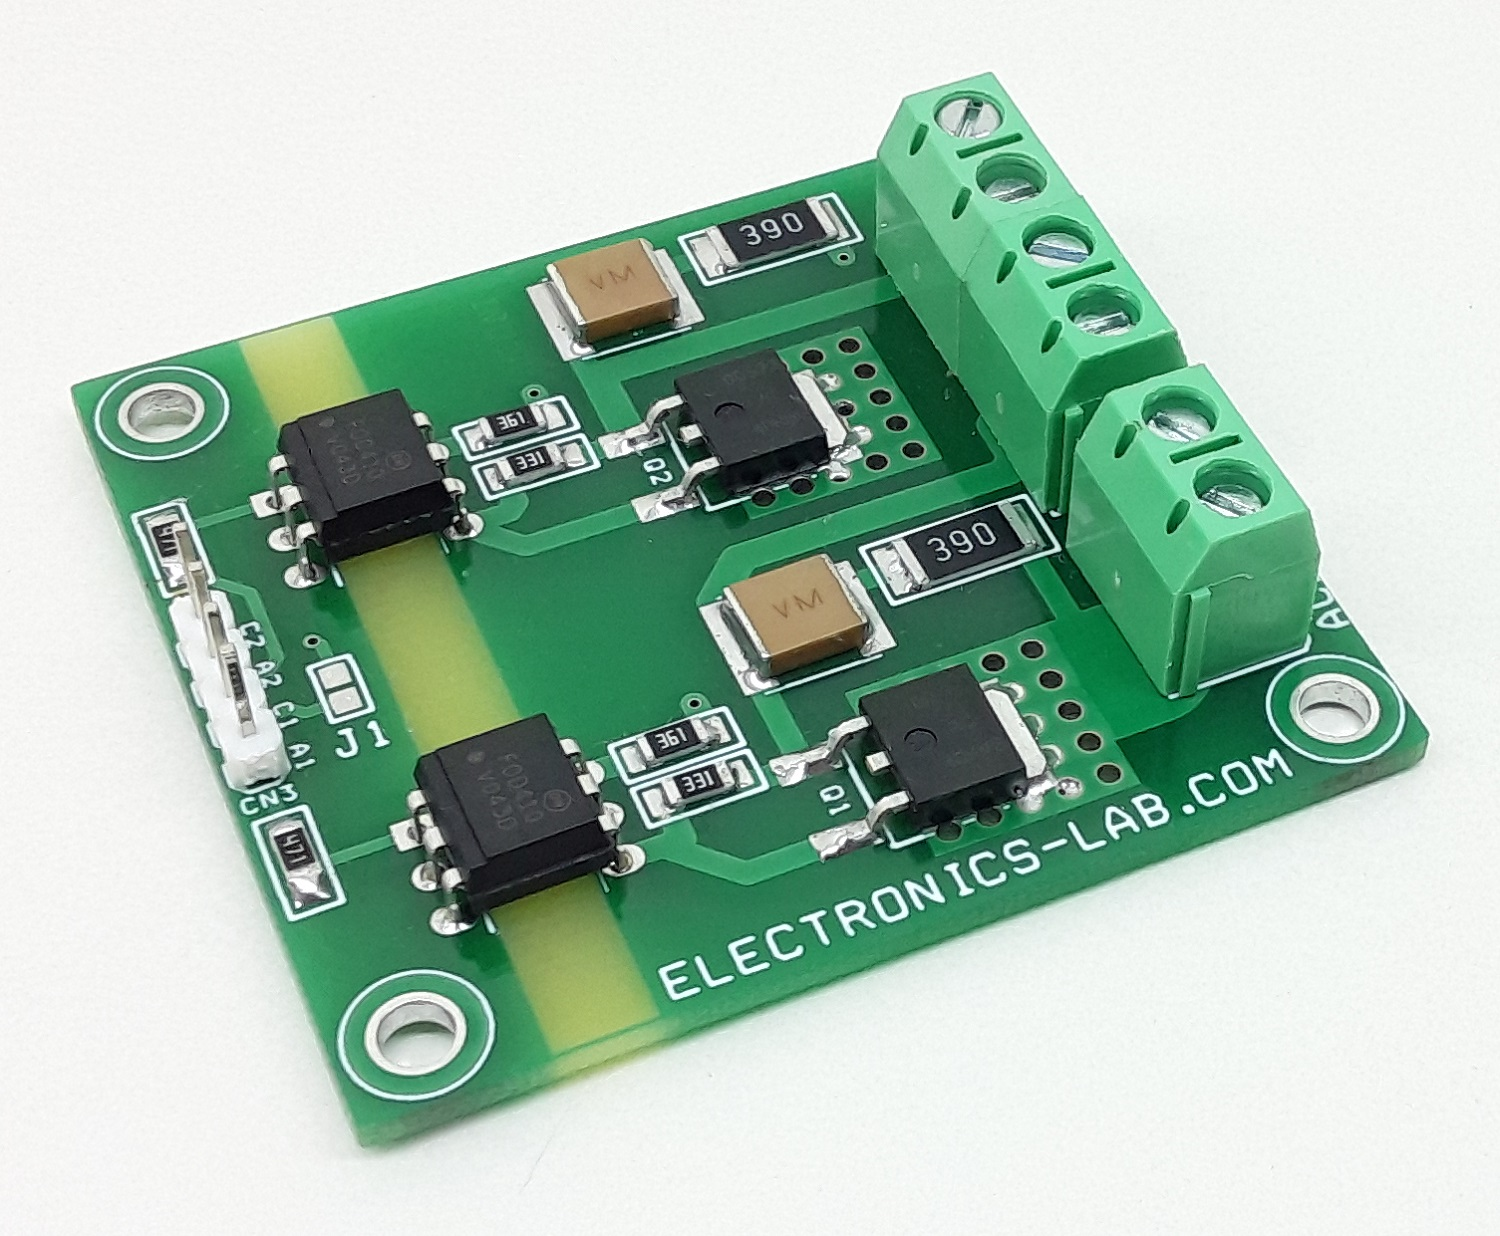 Low Profile 2 Channel Solid State Relay for AC Loads